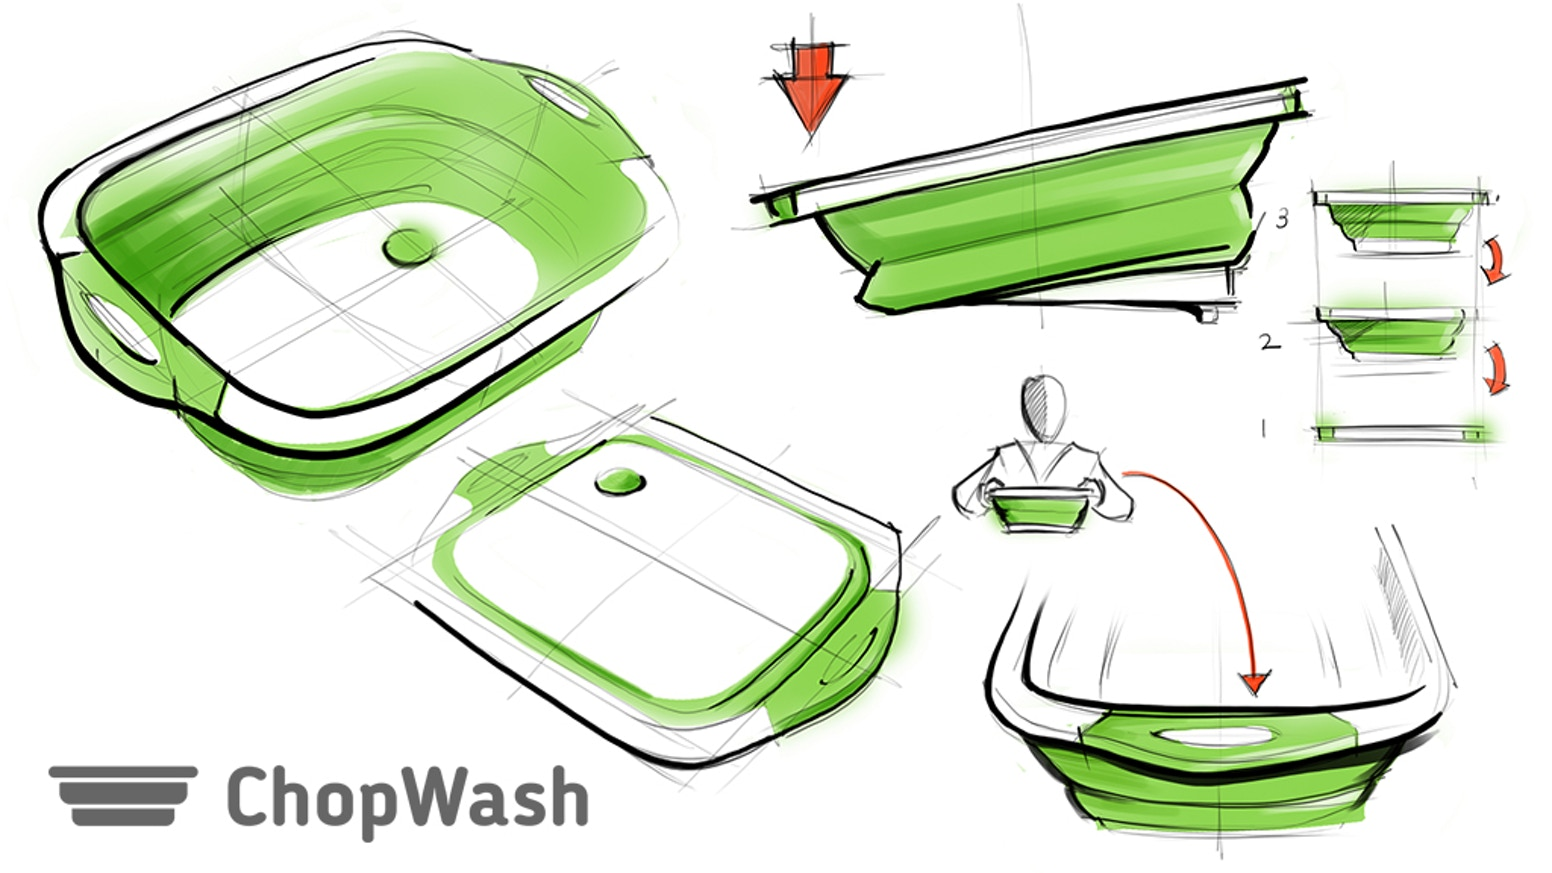 Not just a cutting board not just a washing bowl chopwash is so much